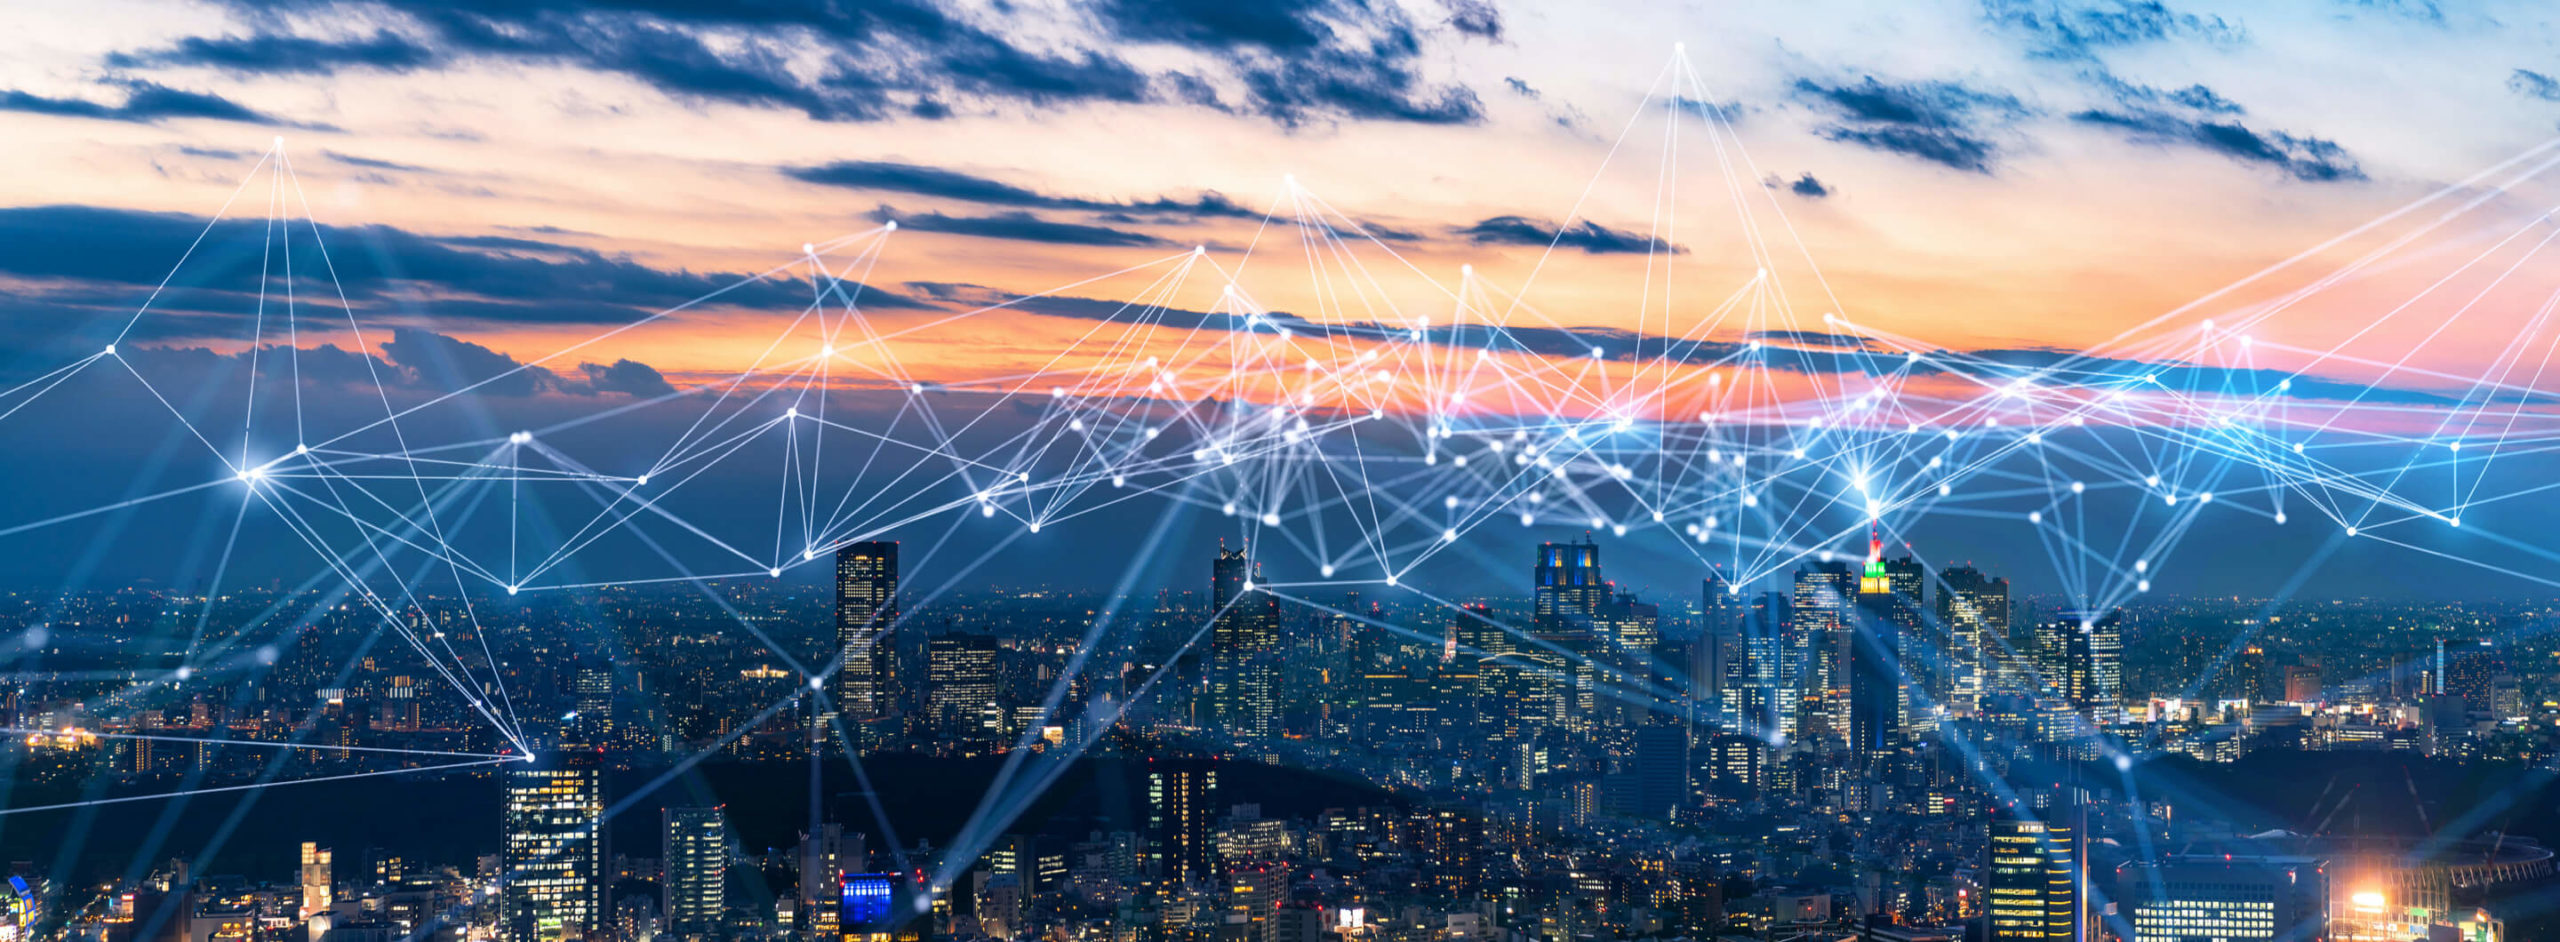 Robin.io and Quortus Partner to Provide Next-Gen, Cloud-Native Solutions for 5G